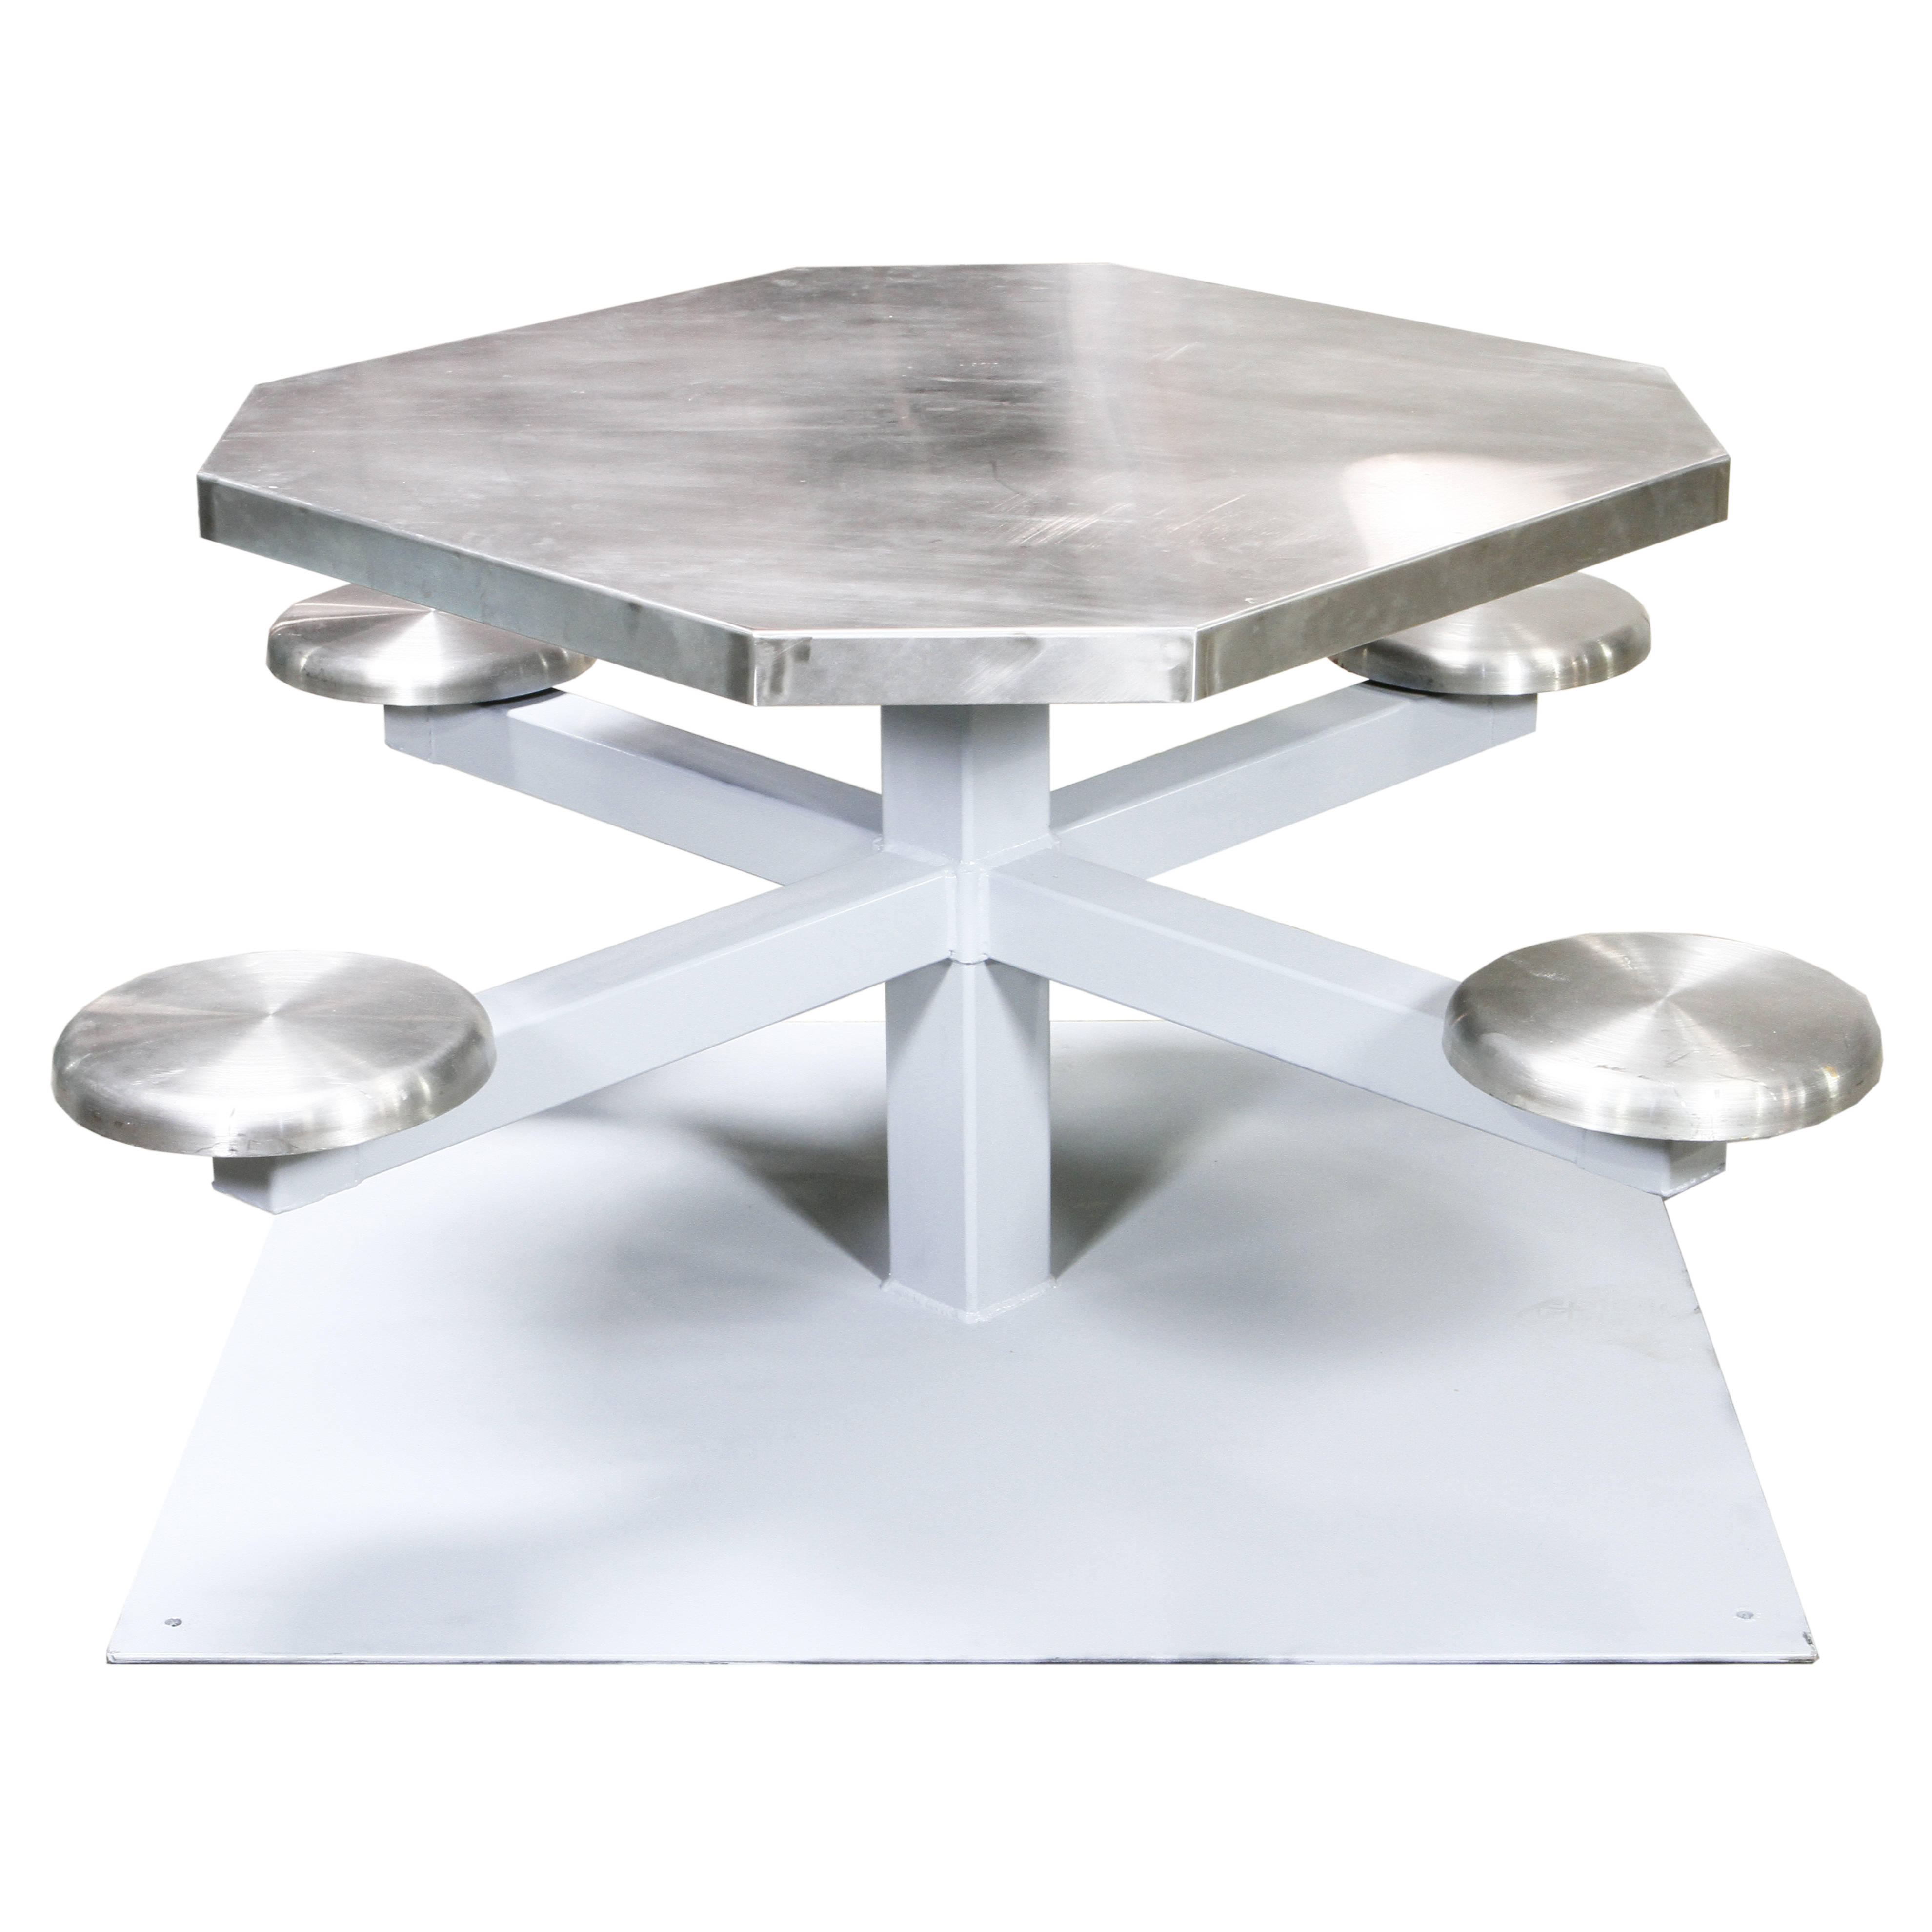 Prison Table Outdoor 4 Seat Air Designs